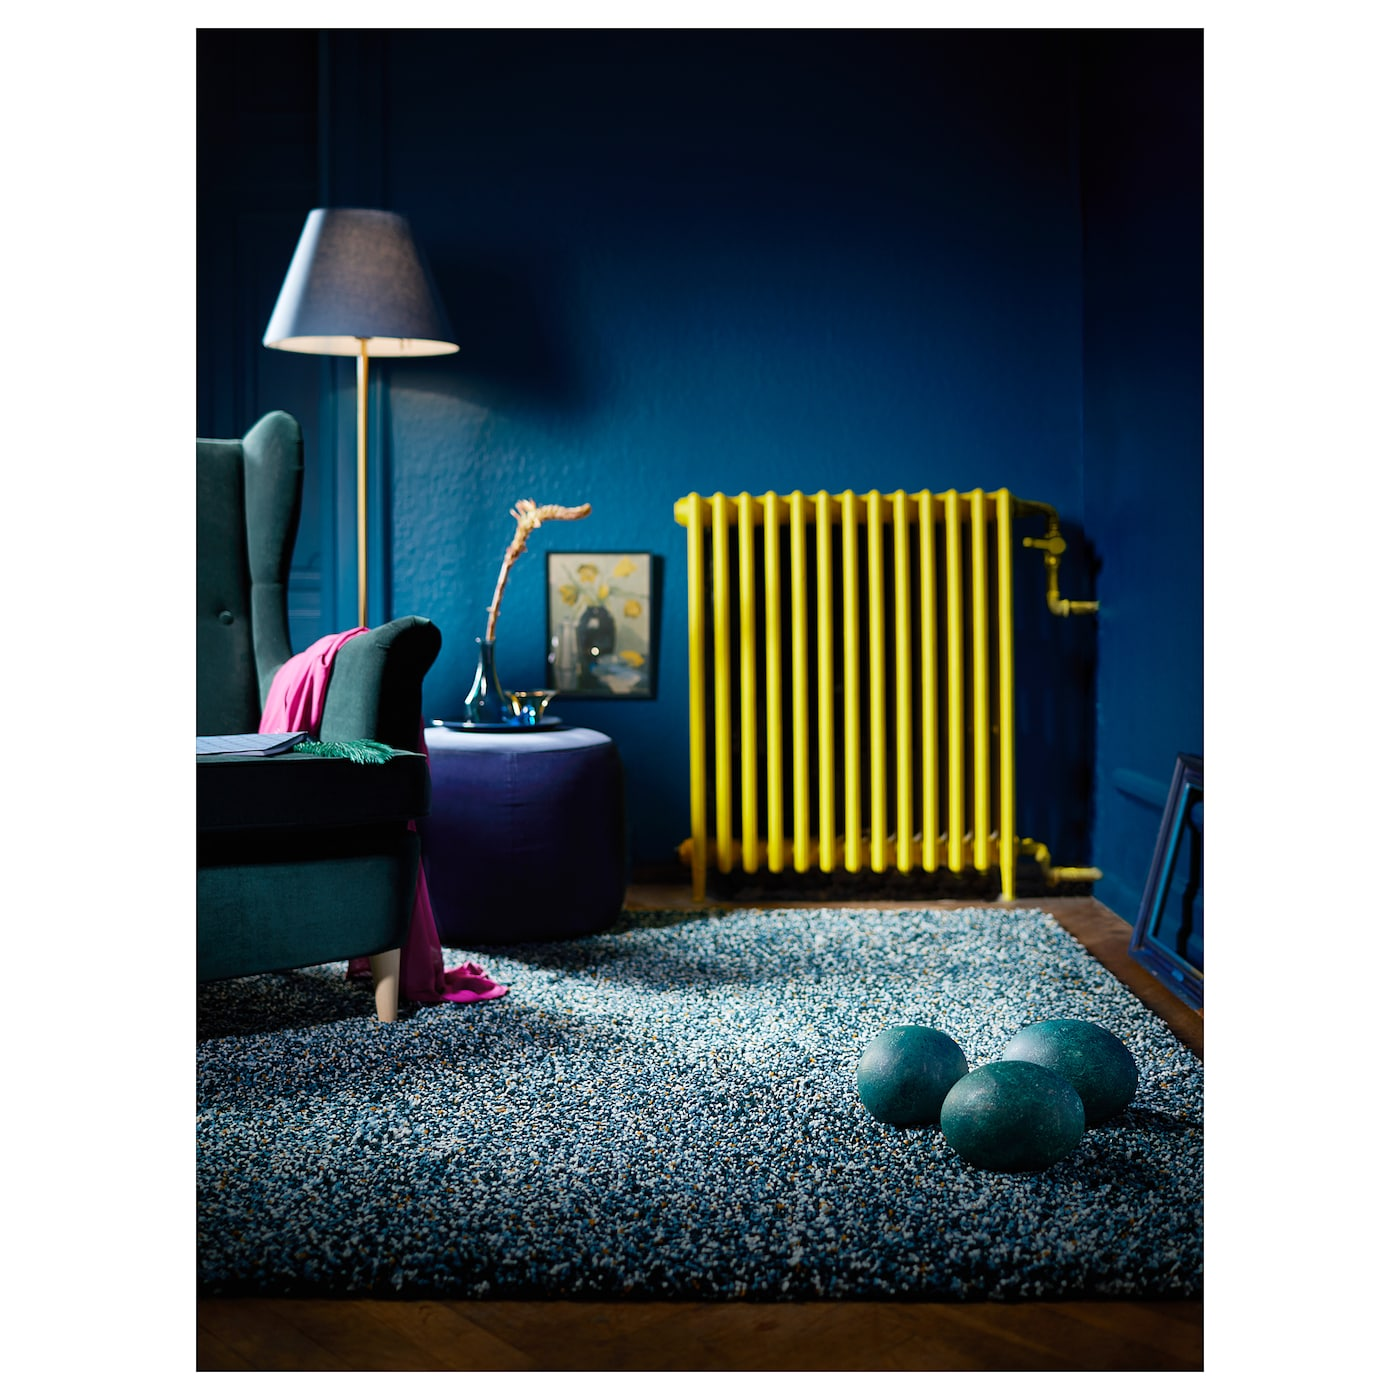 vindum tapis poils hauts bleu vert 200 x 270 cm ikea. Black Bedroom Furniture Sets. Home Design Ideas